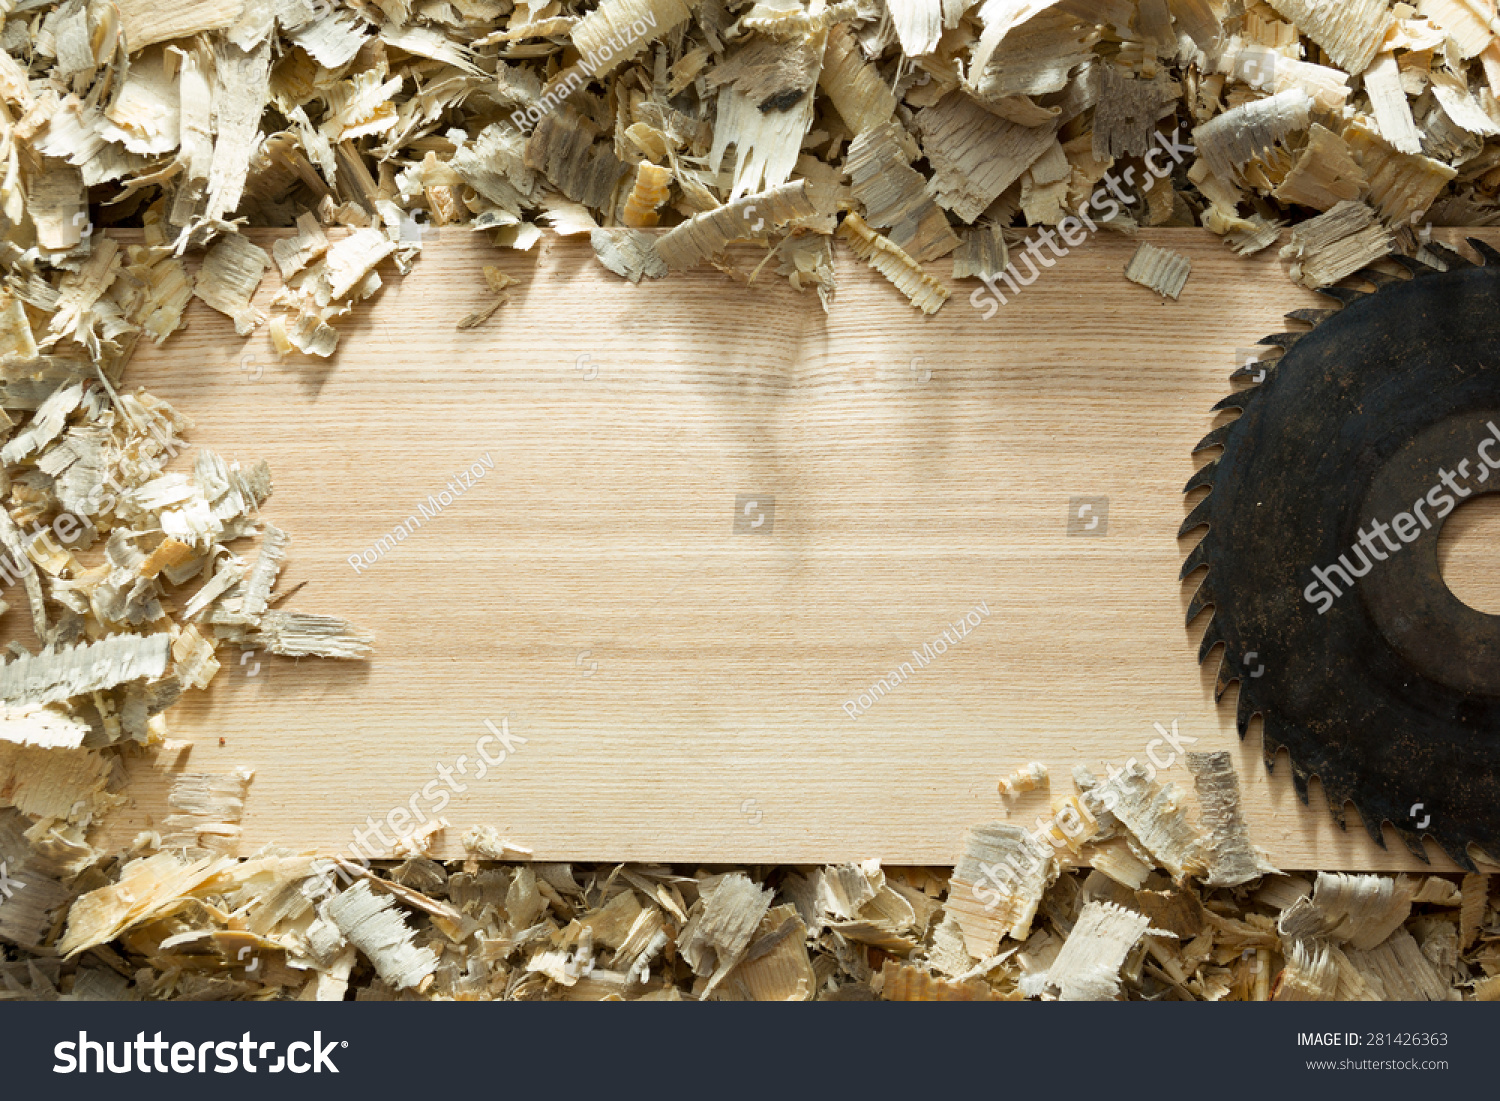 Working In Sawdust ~ Carpenter tools on wooden table with sawdust